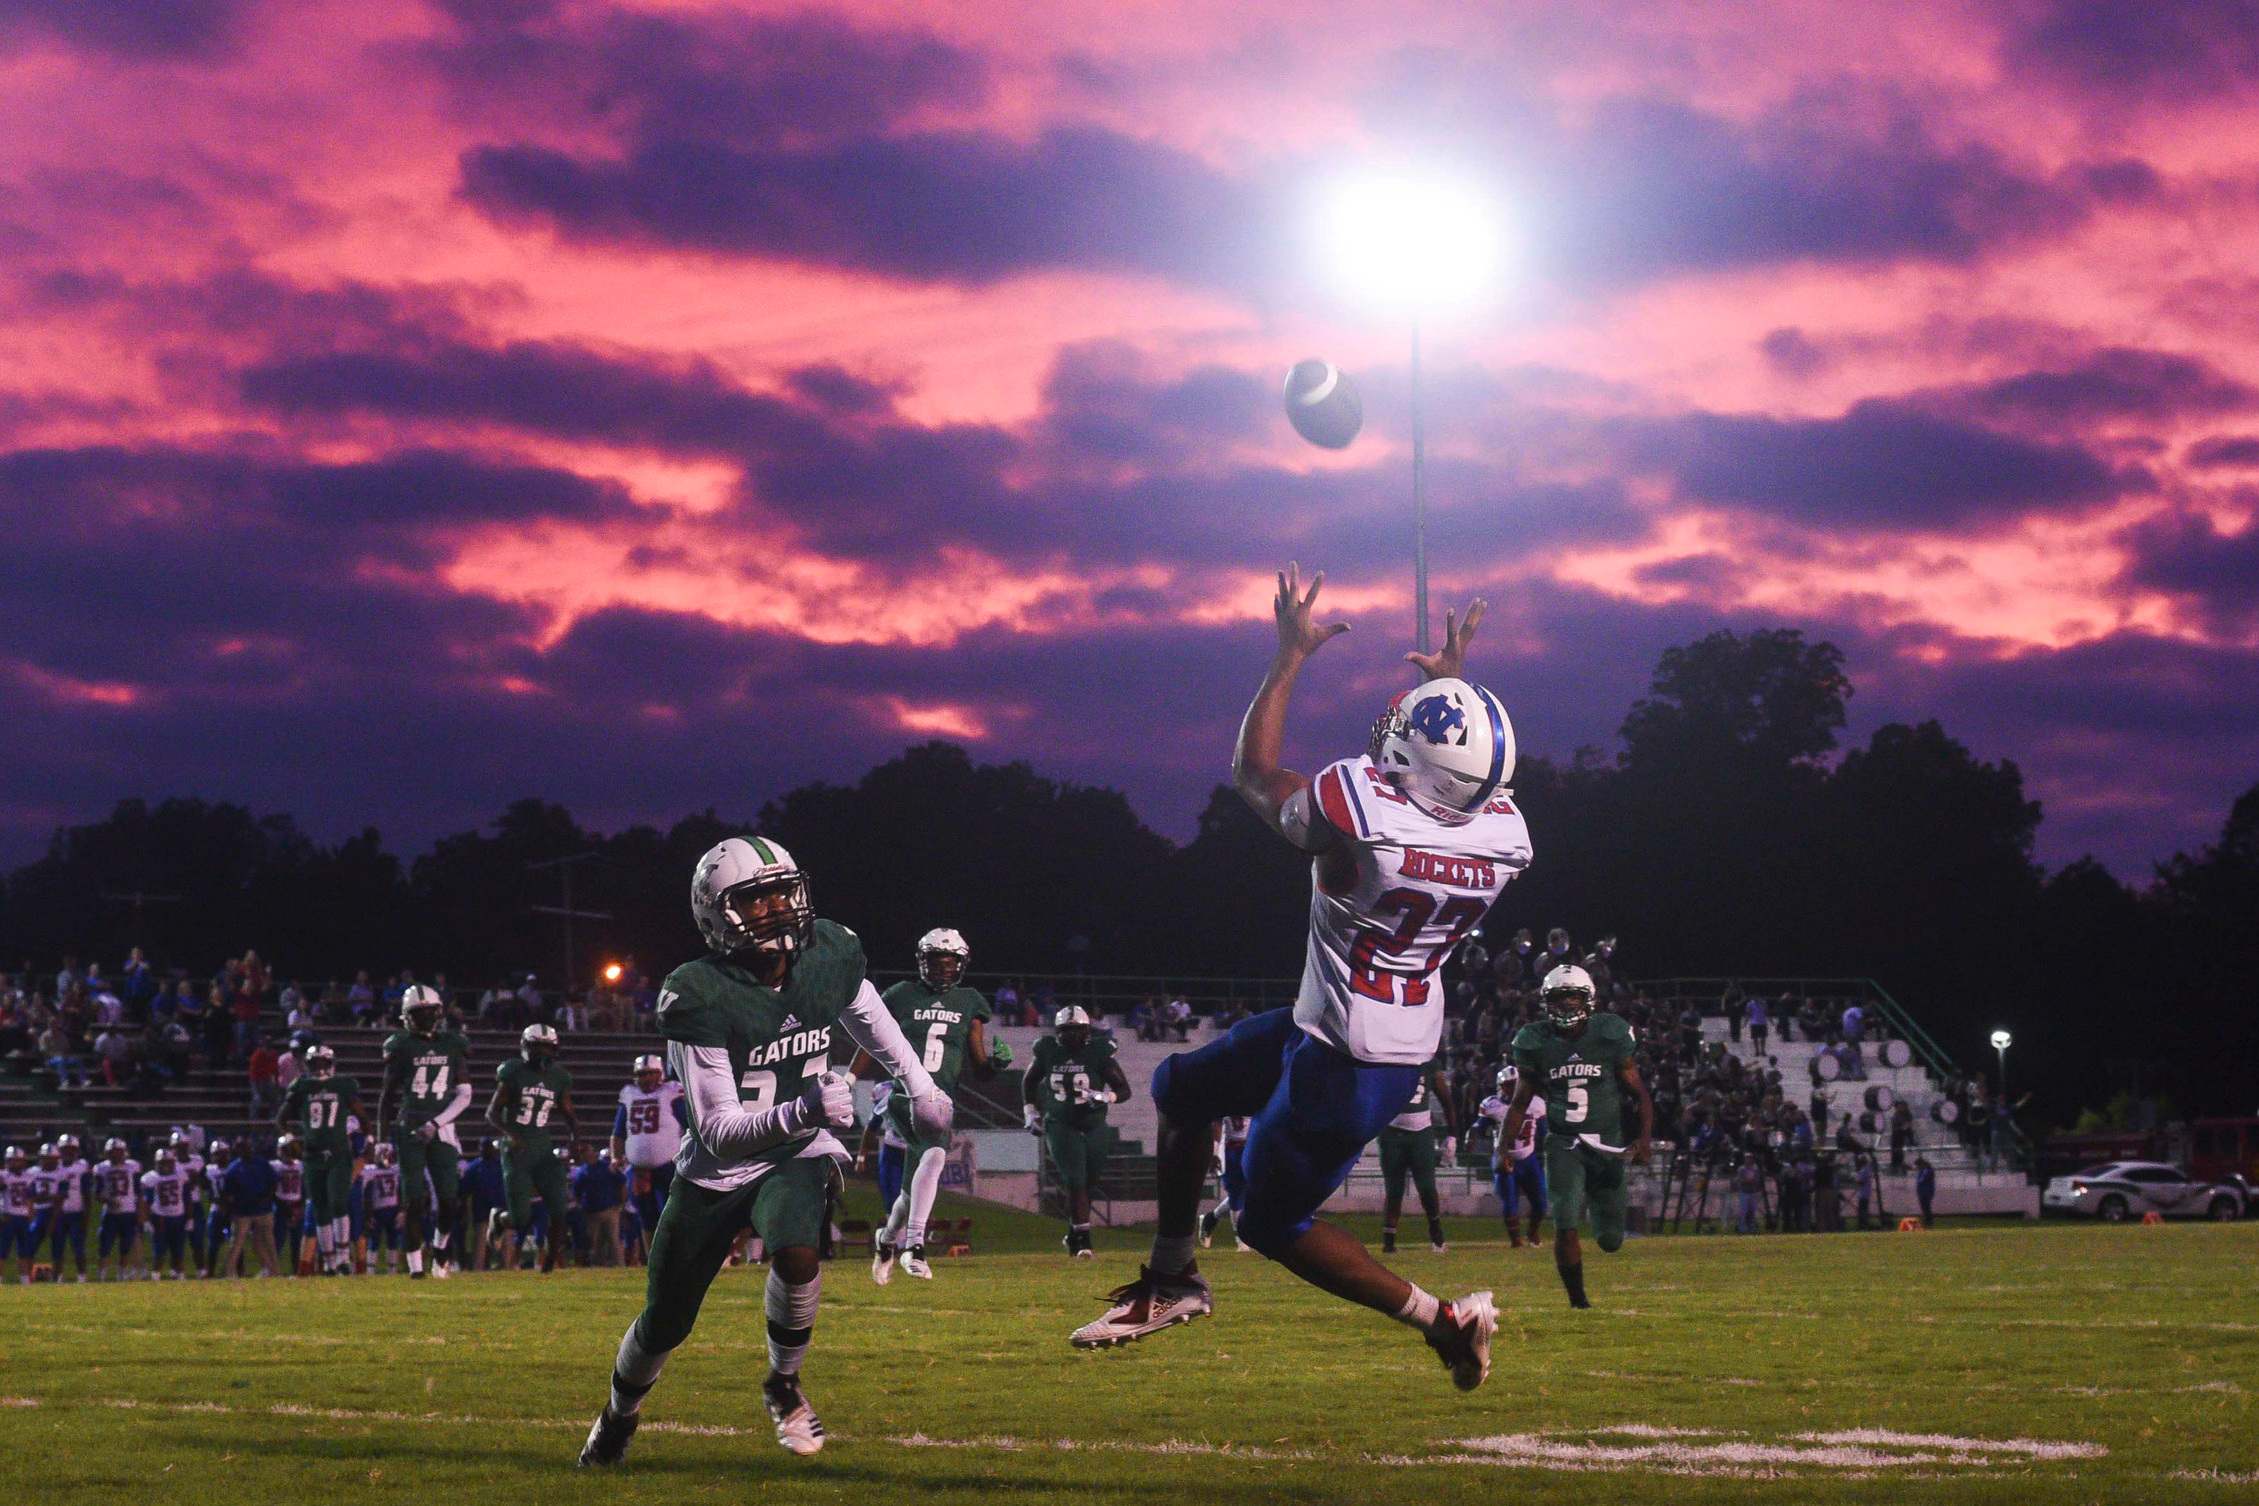 Neshoba Central's Jarquez Hunter (27) catches a touchdown pass against Vicksburg High on Friday Sept. 28, 2018. Hunter scored five touchdowns one receiving, three rushing and another on defense as Neshoba beat the Gators 68-42.